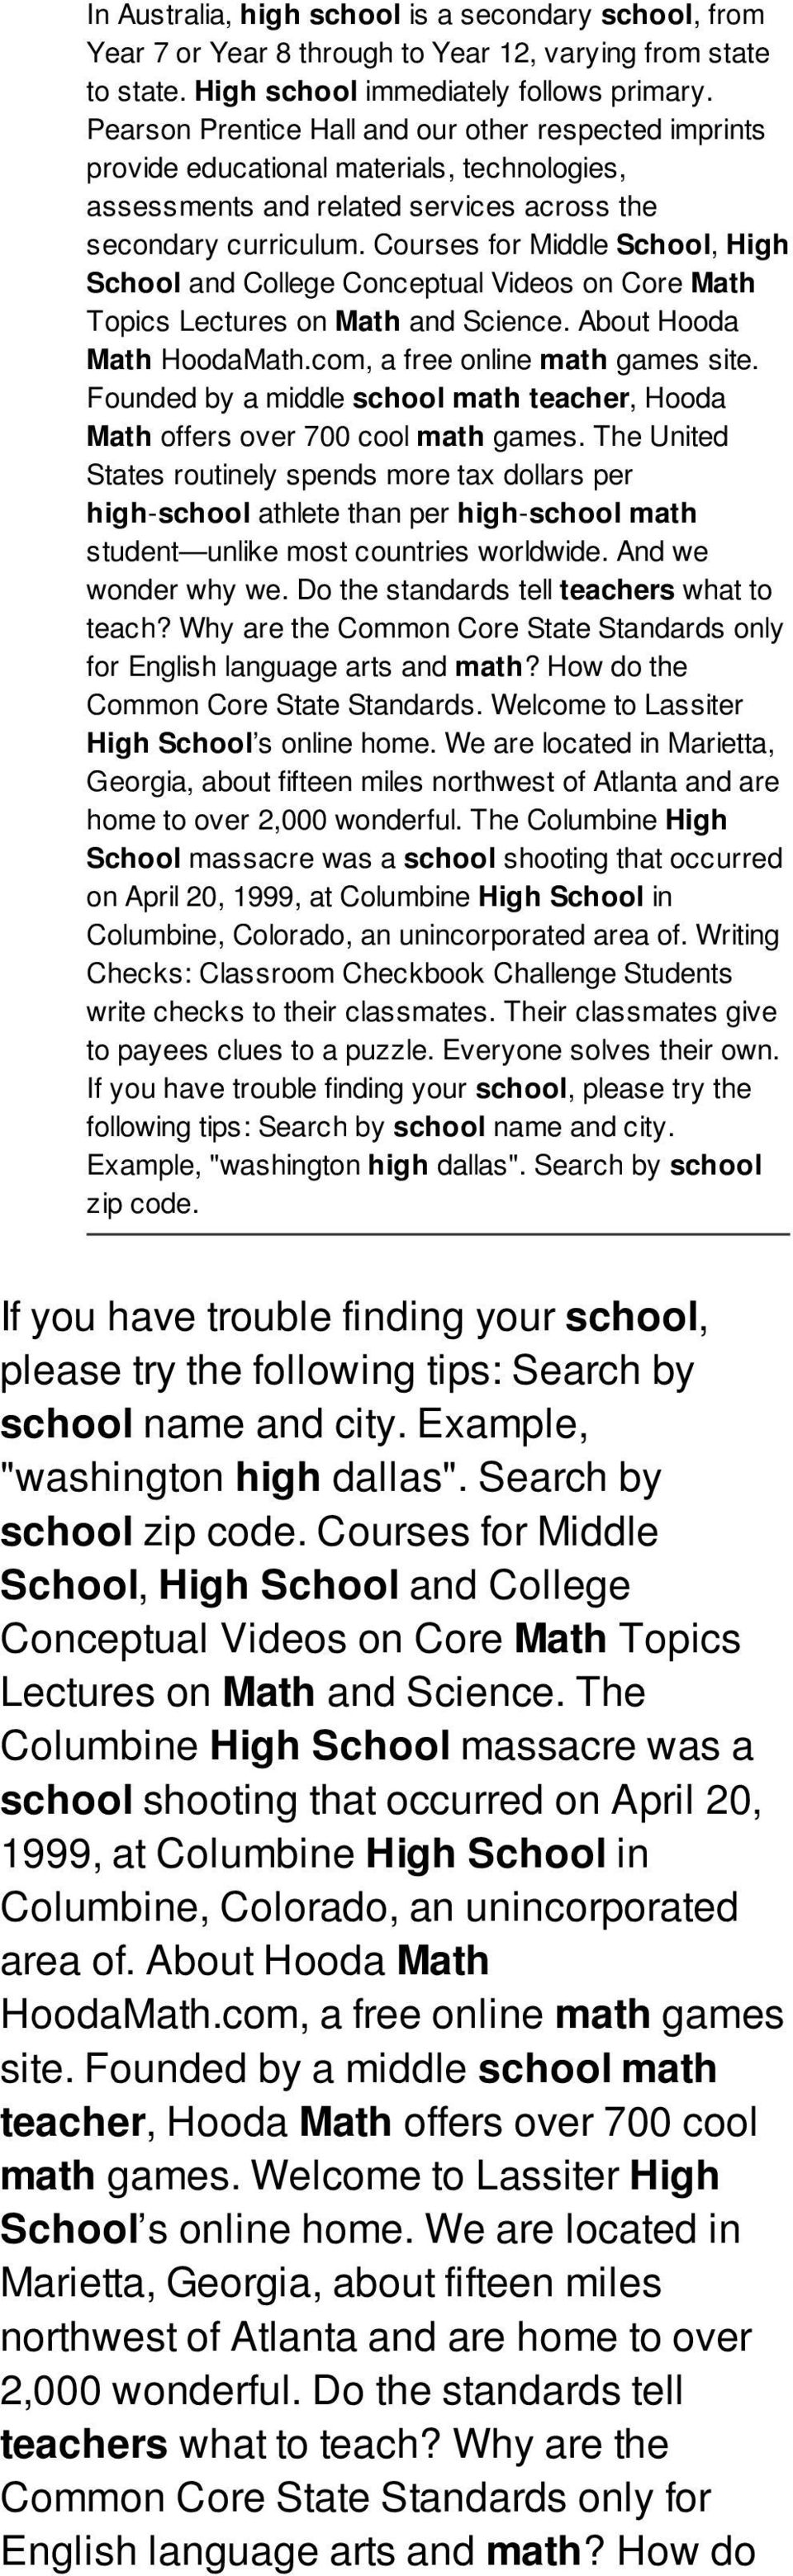 Courses for Middle School, High School and College Conceptual Videos on Core Math Topics Lectures on Math and Science. About Hooda Math HoodaMath.com, a free online math games site.